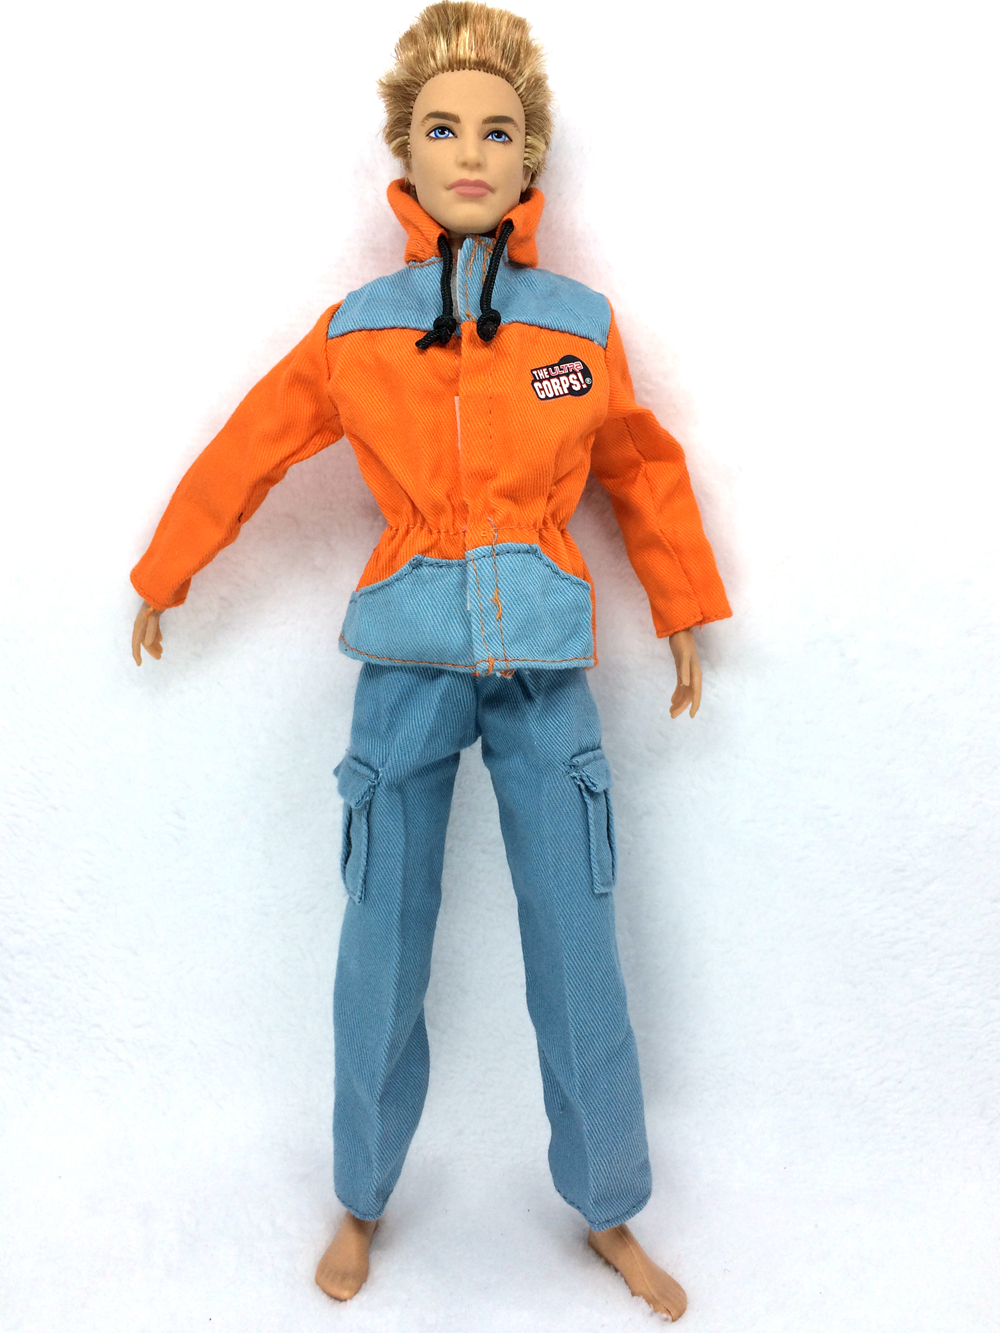 NK Original Prince Clothes Combat Police Uniform Cop Outfit For Barbie Boy Male Ken Doll For Lanard  1/6 Soldier  Best Gift 015A<br><br>Aliexpress